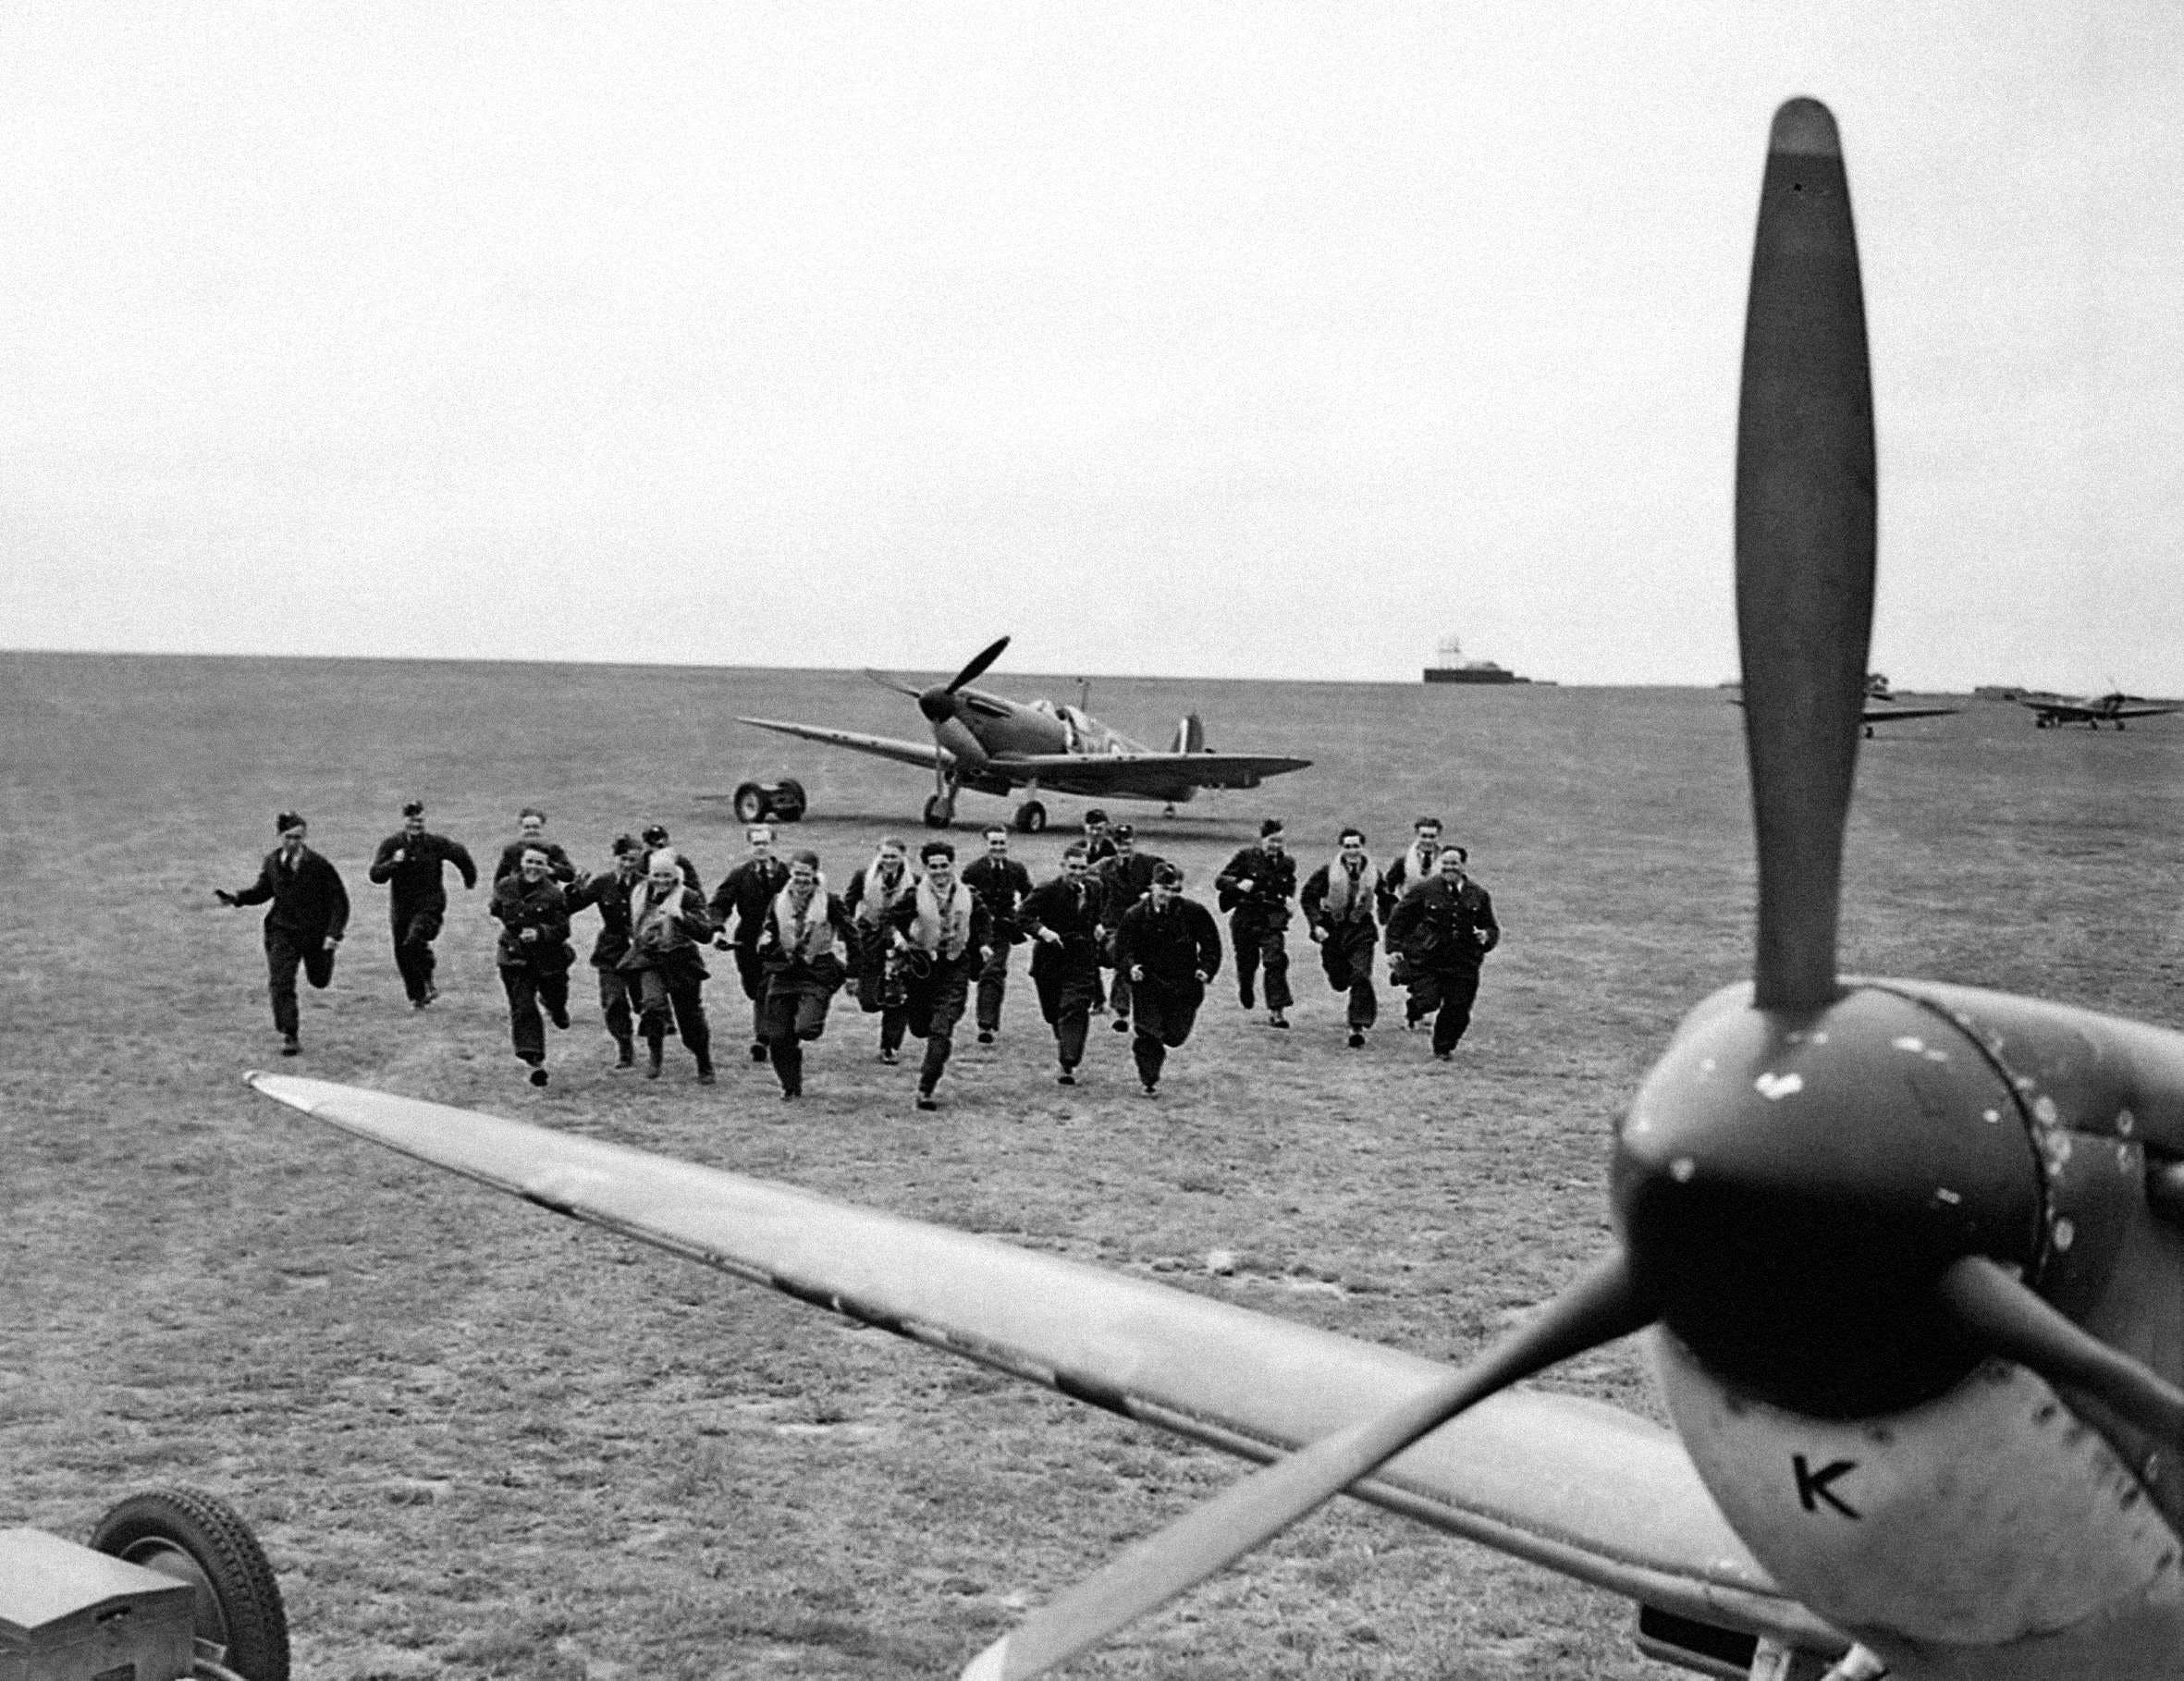 RAF pilots in the Battle of Britain